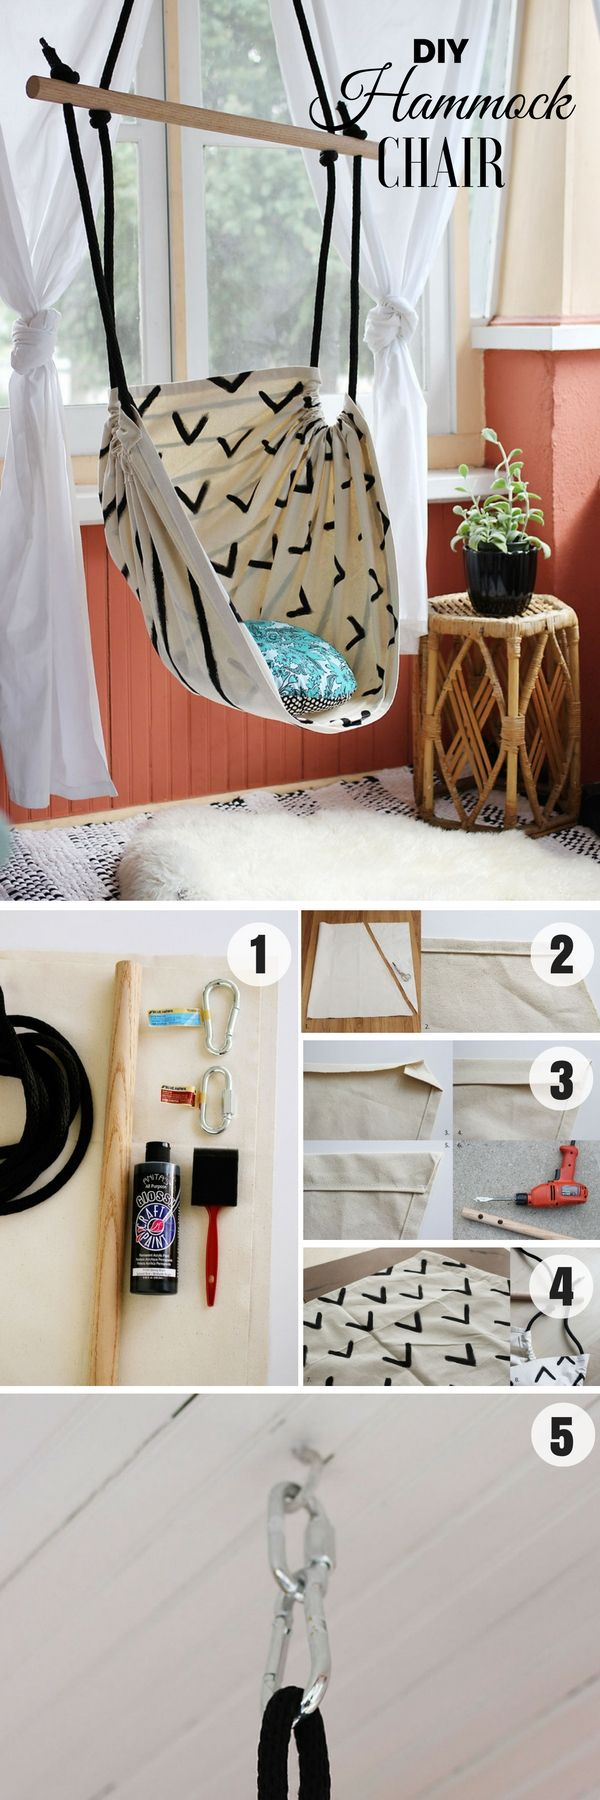 16 beautiful diy bedroom decor ideas that will inspire you - Bedroom Ideas Pinterest Diy